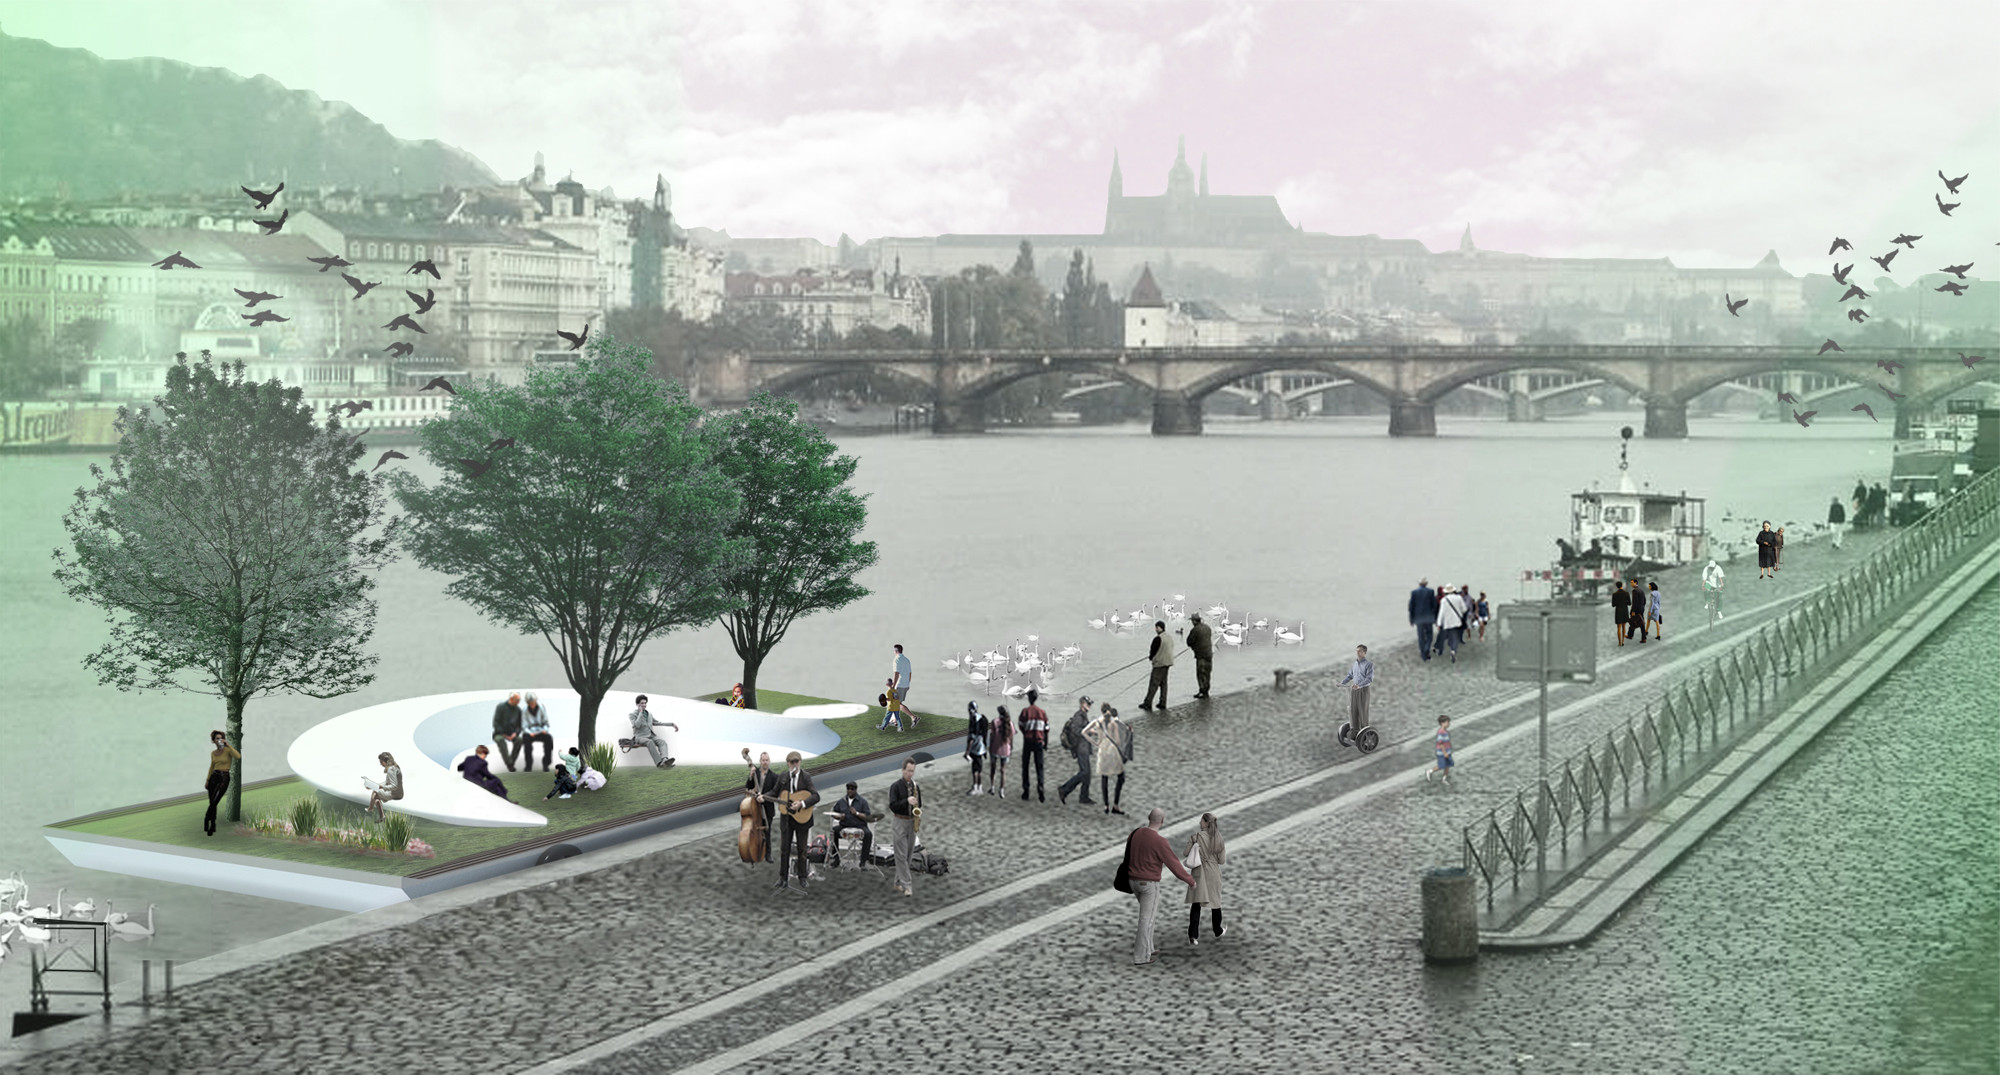 Prague Activators Proposal / Juras Lasovsky, Zuzana Masna, Koen Hezemans, Courtesy of Juras Lasovsky, Zuzana Masna, and Koen Hezemans